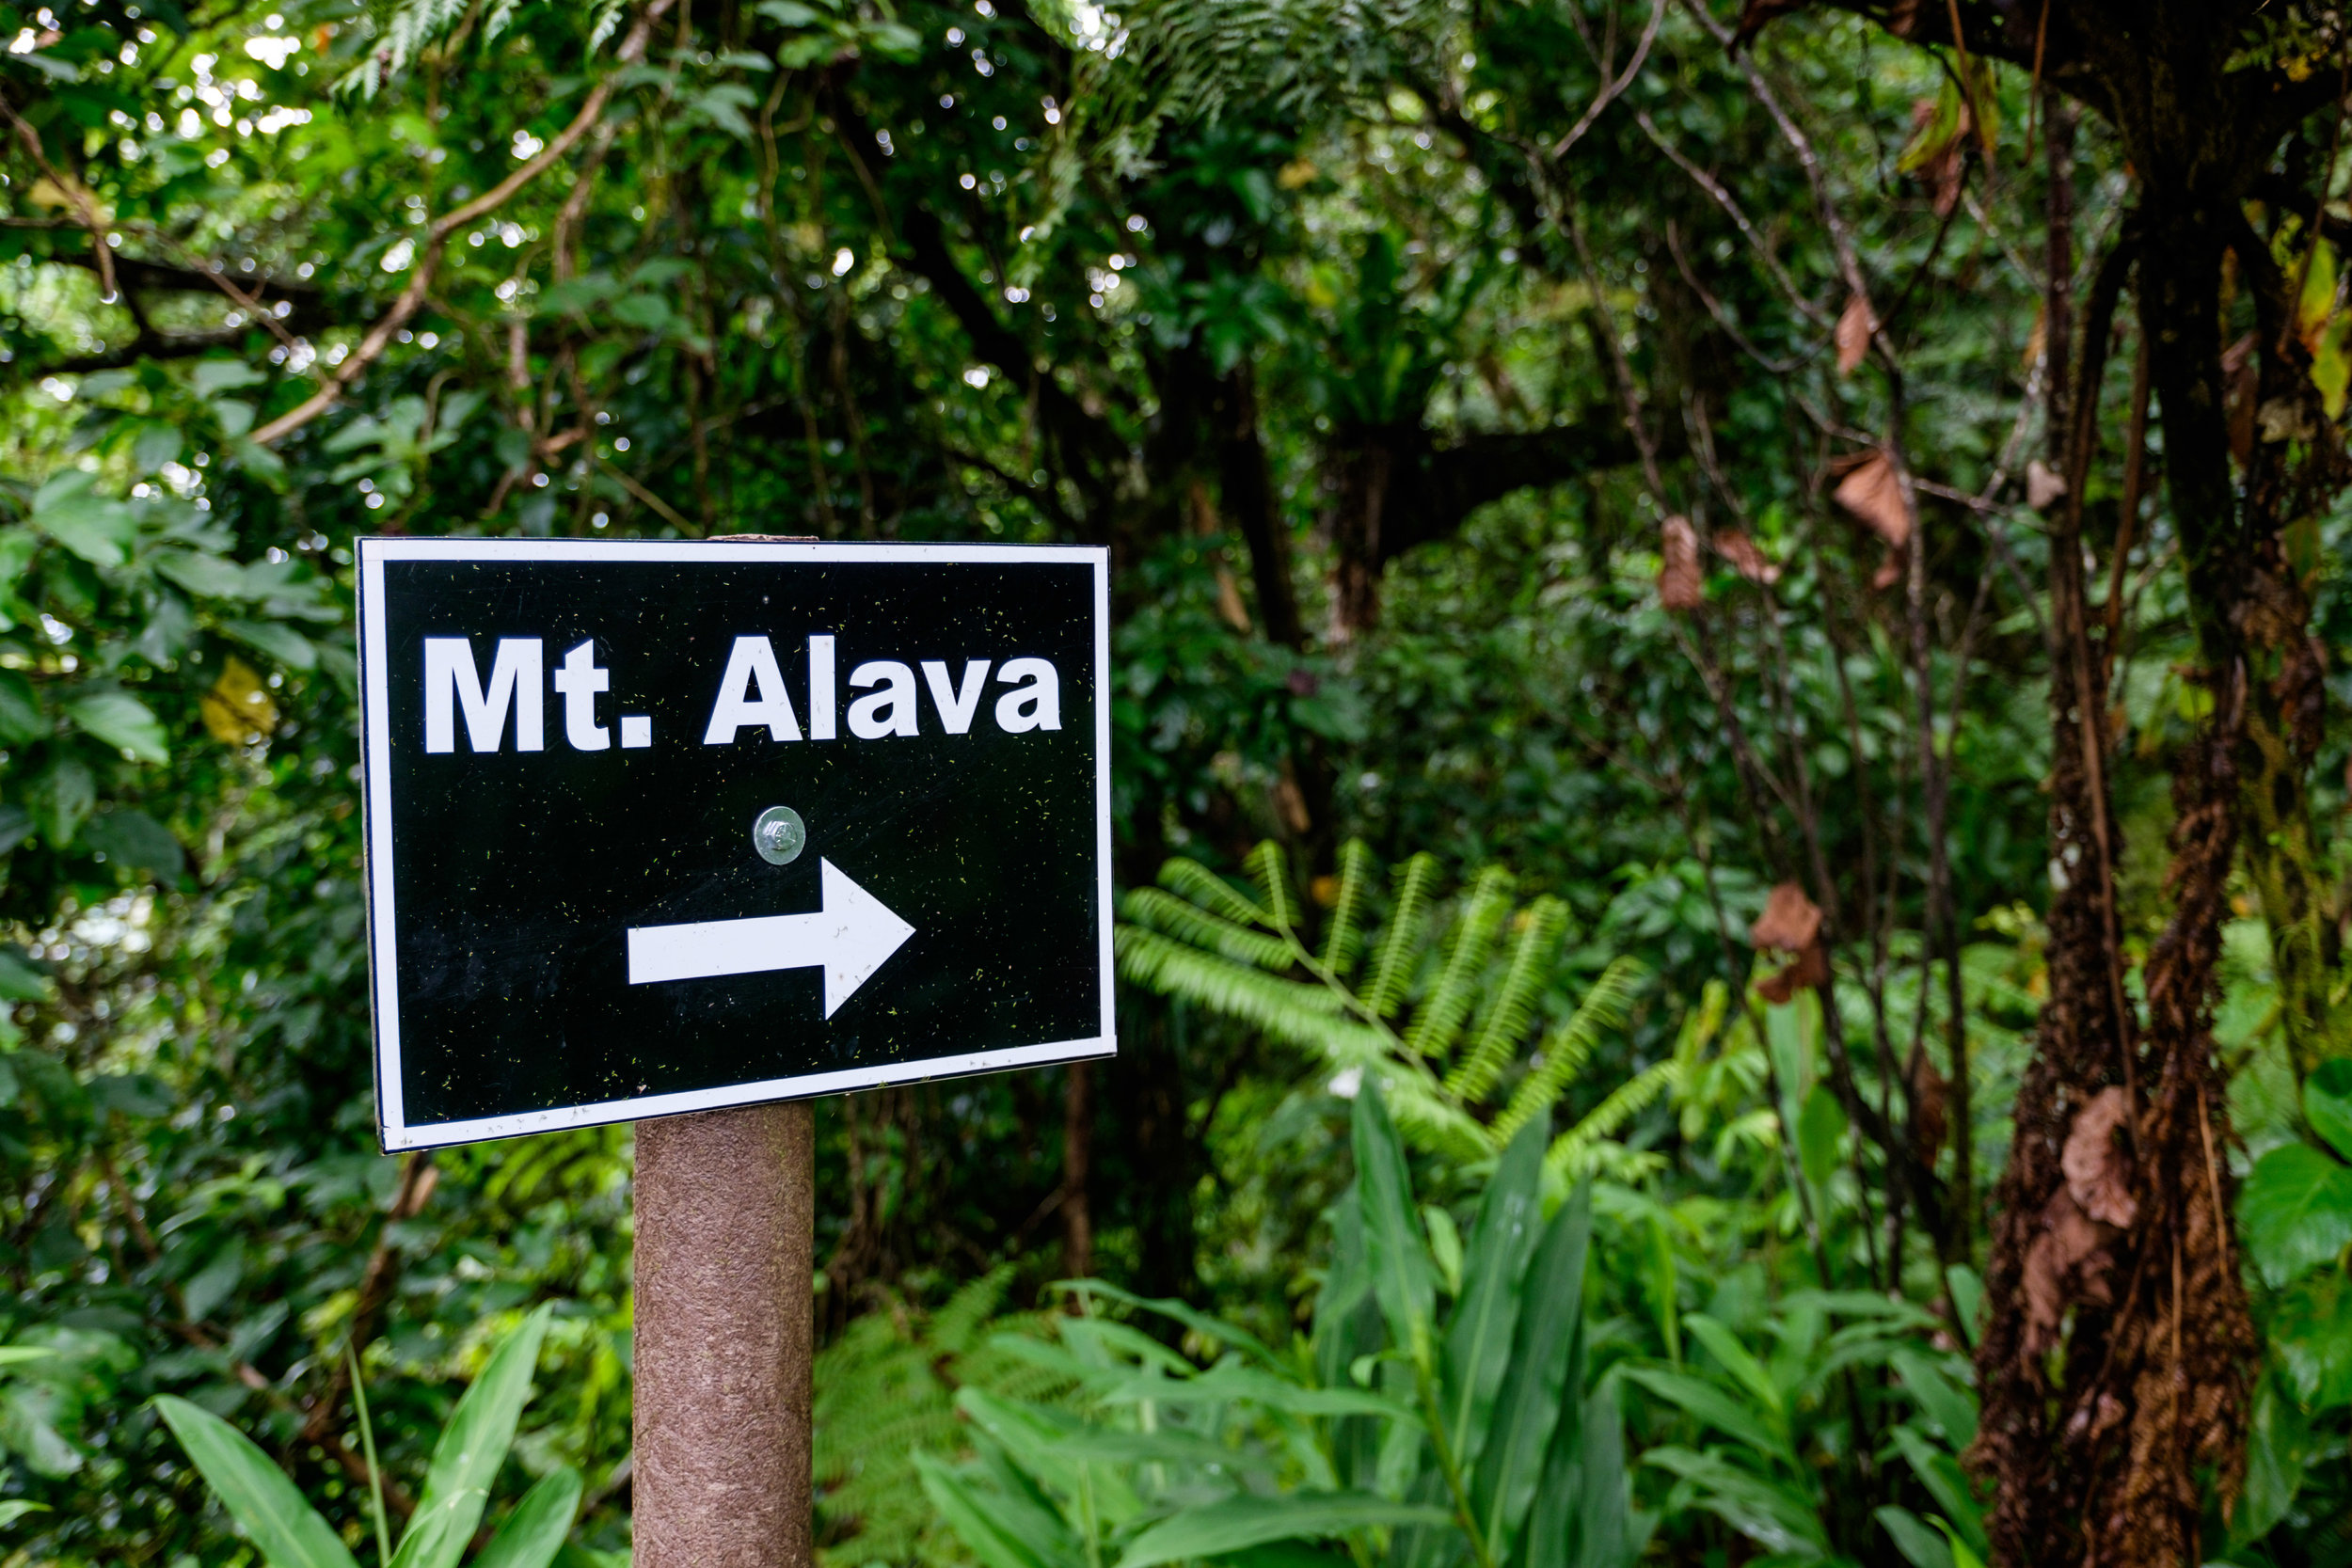 Along the Mt. Alava trail network on Pago Pago.